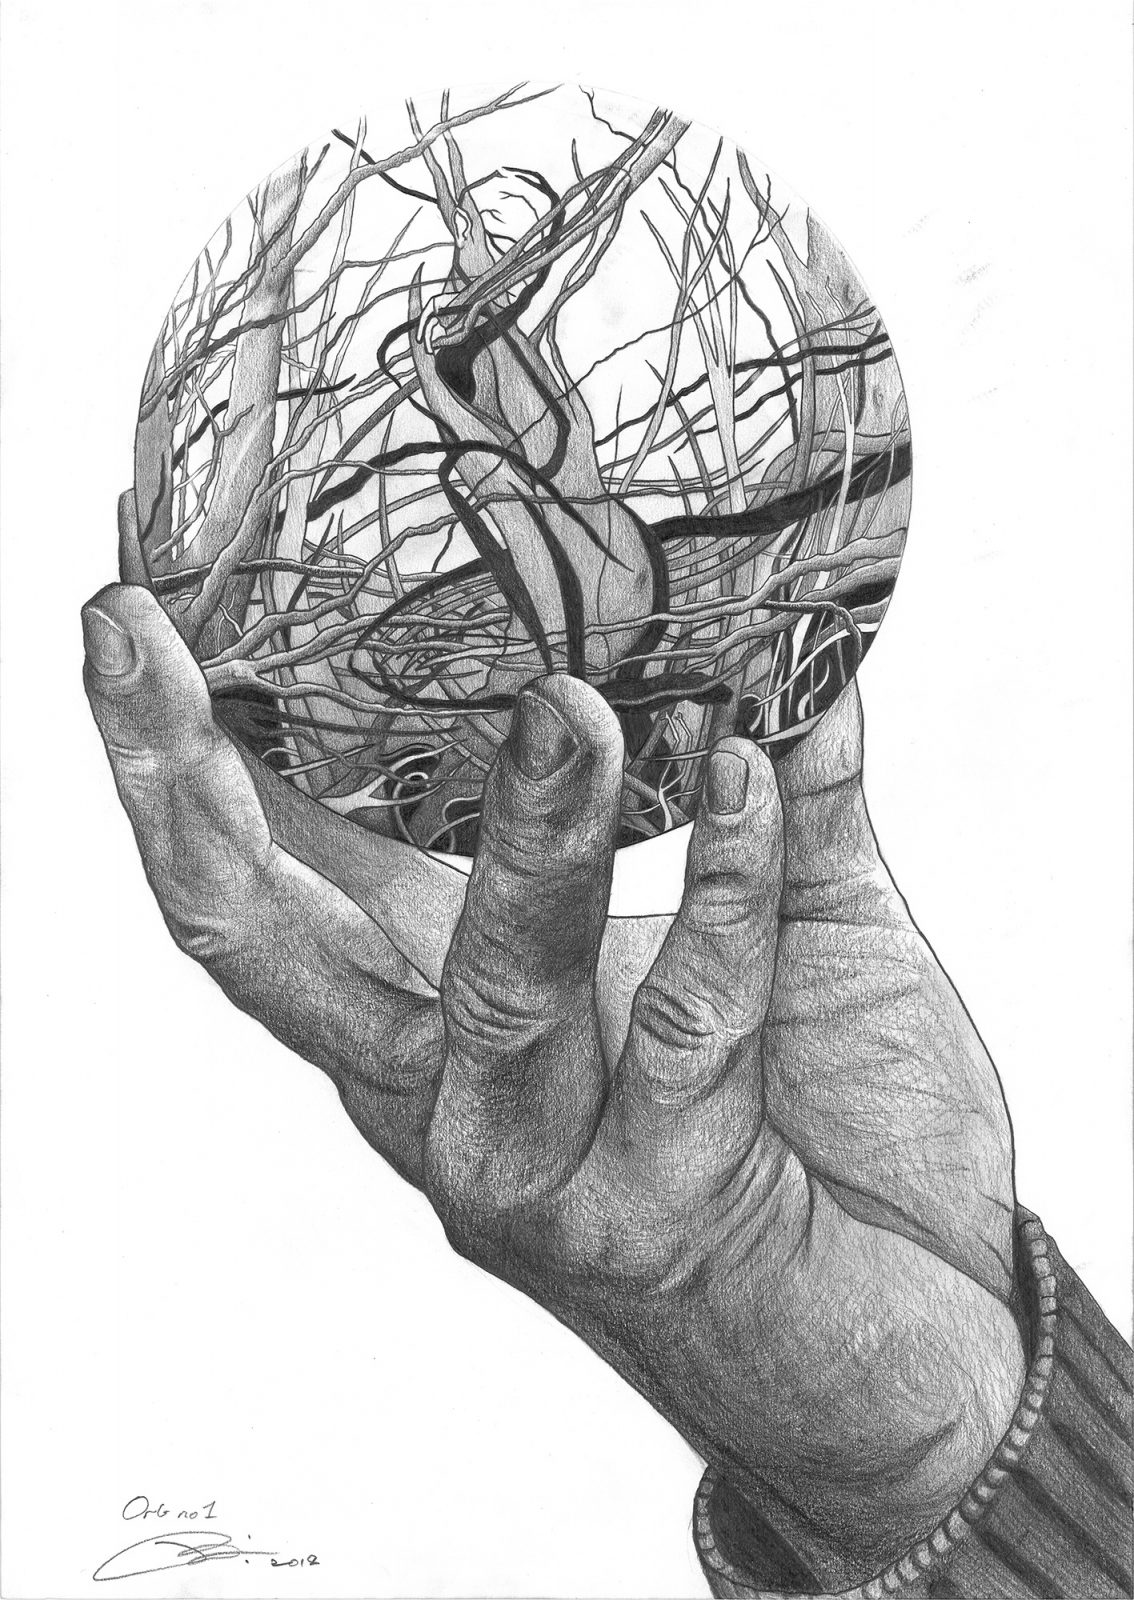 Orb 1 | Pencil on 200gsm paper | 42 x 59.4 cm